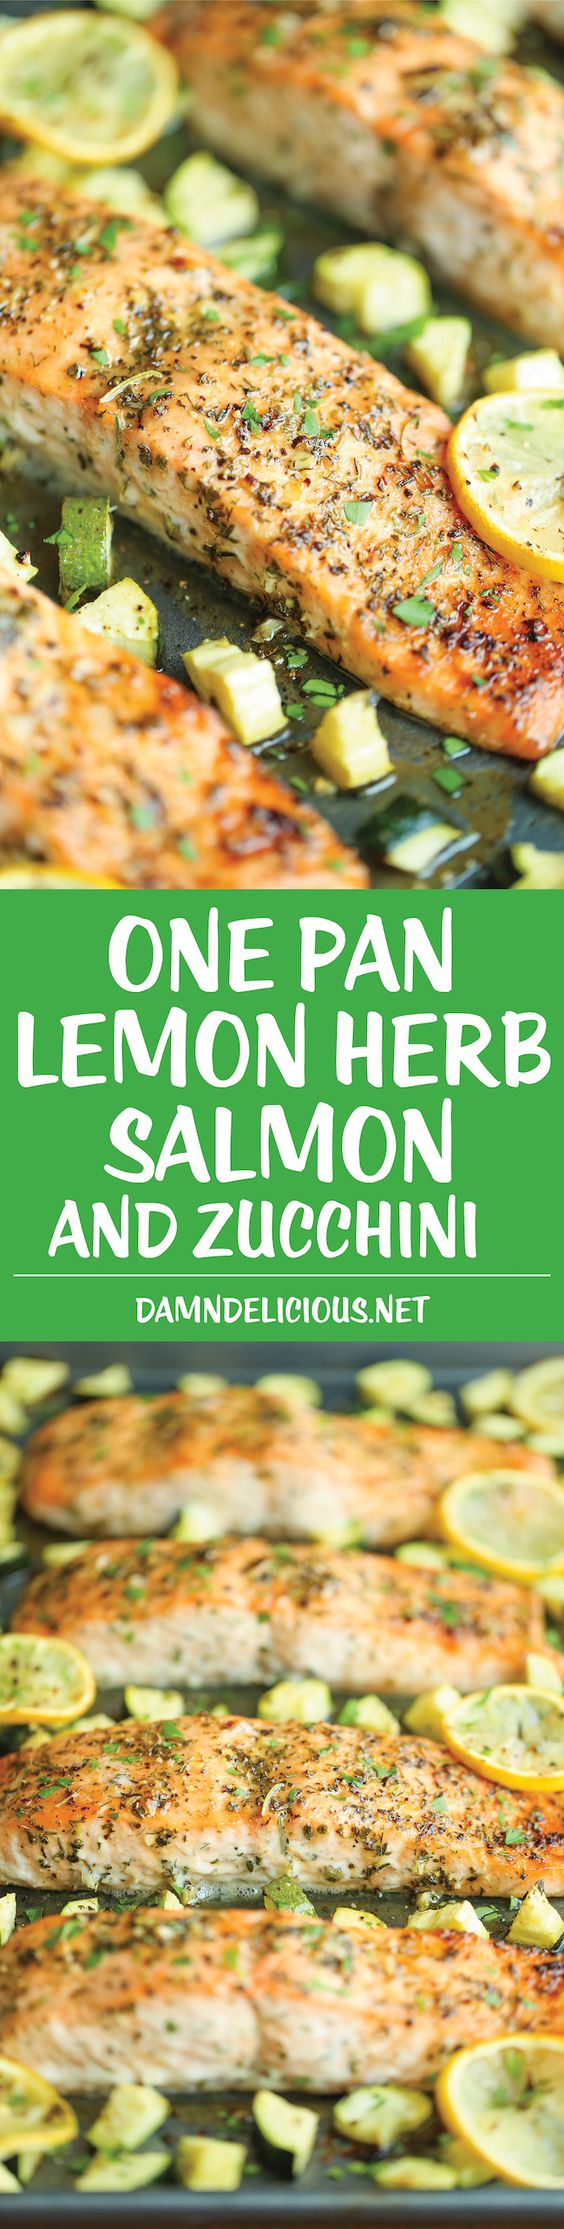 One Pan Lemon Herb Salmon and Zucchini - Quick, easy, and all made on a single pan. And the salmon is packed with so much flavor. It doesn't get any easier!